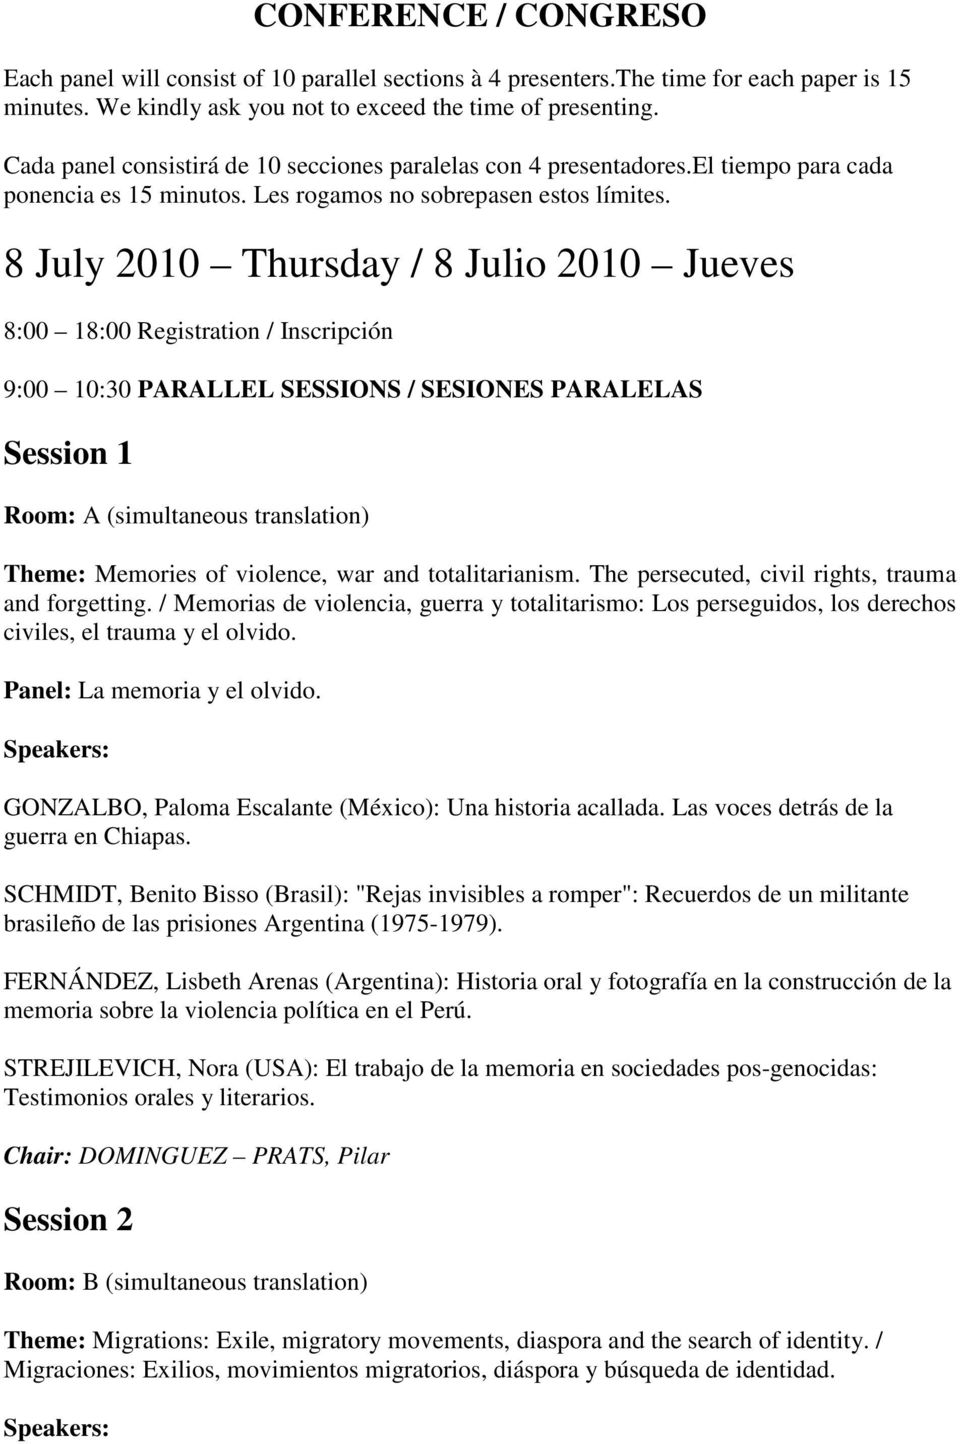 8 July 2010 Thursday / 8 Julio 2010 Jueves 8:00 18:00 Registration / Inscripción 9:00 10:30 PARALLEL SESSIONS / SESIONES PARALELAS Session 1 Room: A (simultaneous translation) Theme: Memories of